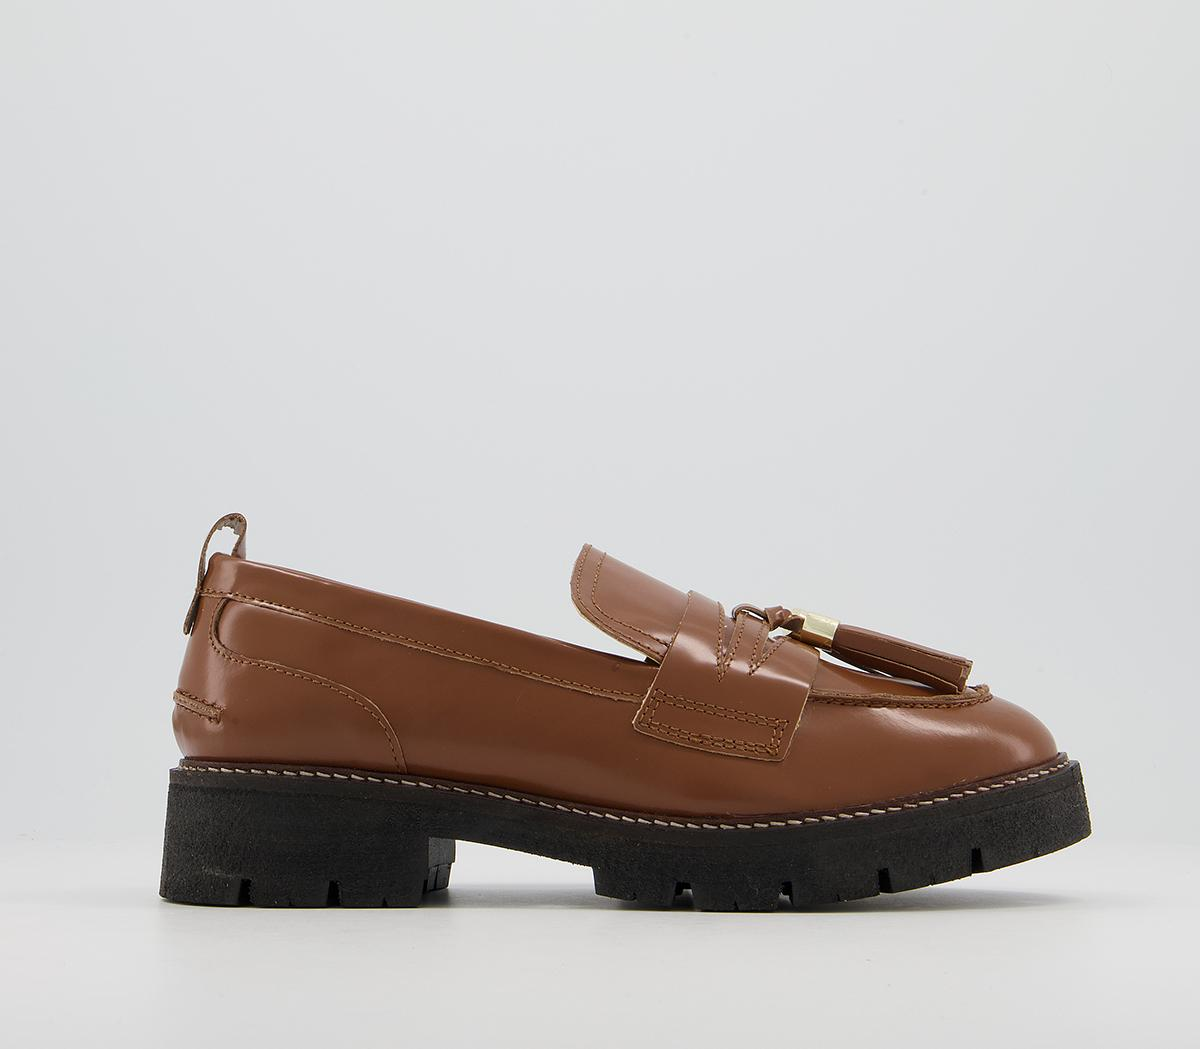 Fundamental Cleated Tassel Loafer Shoes